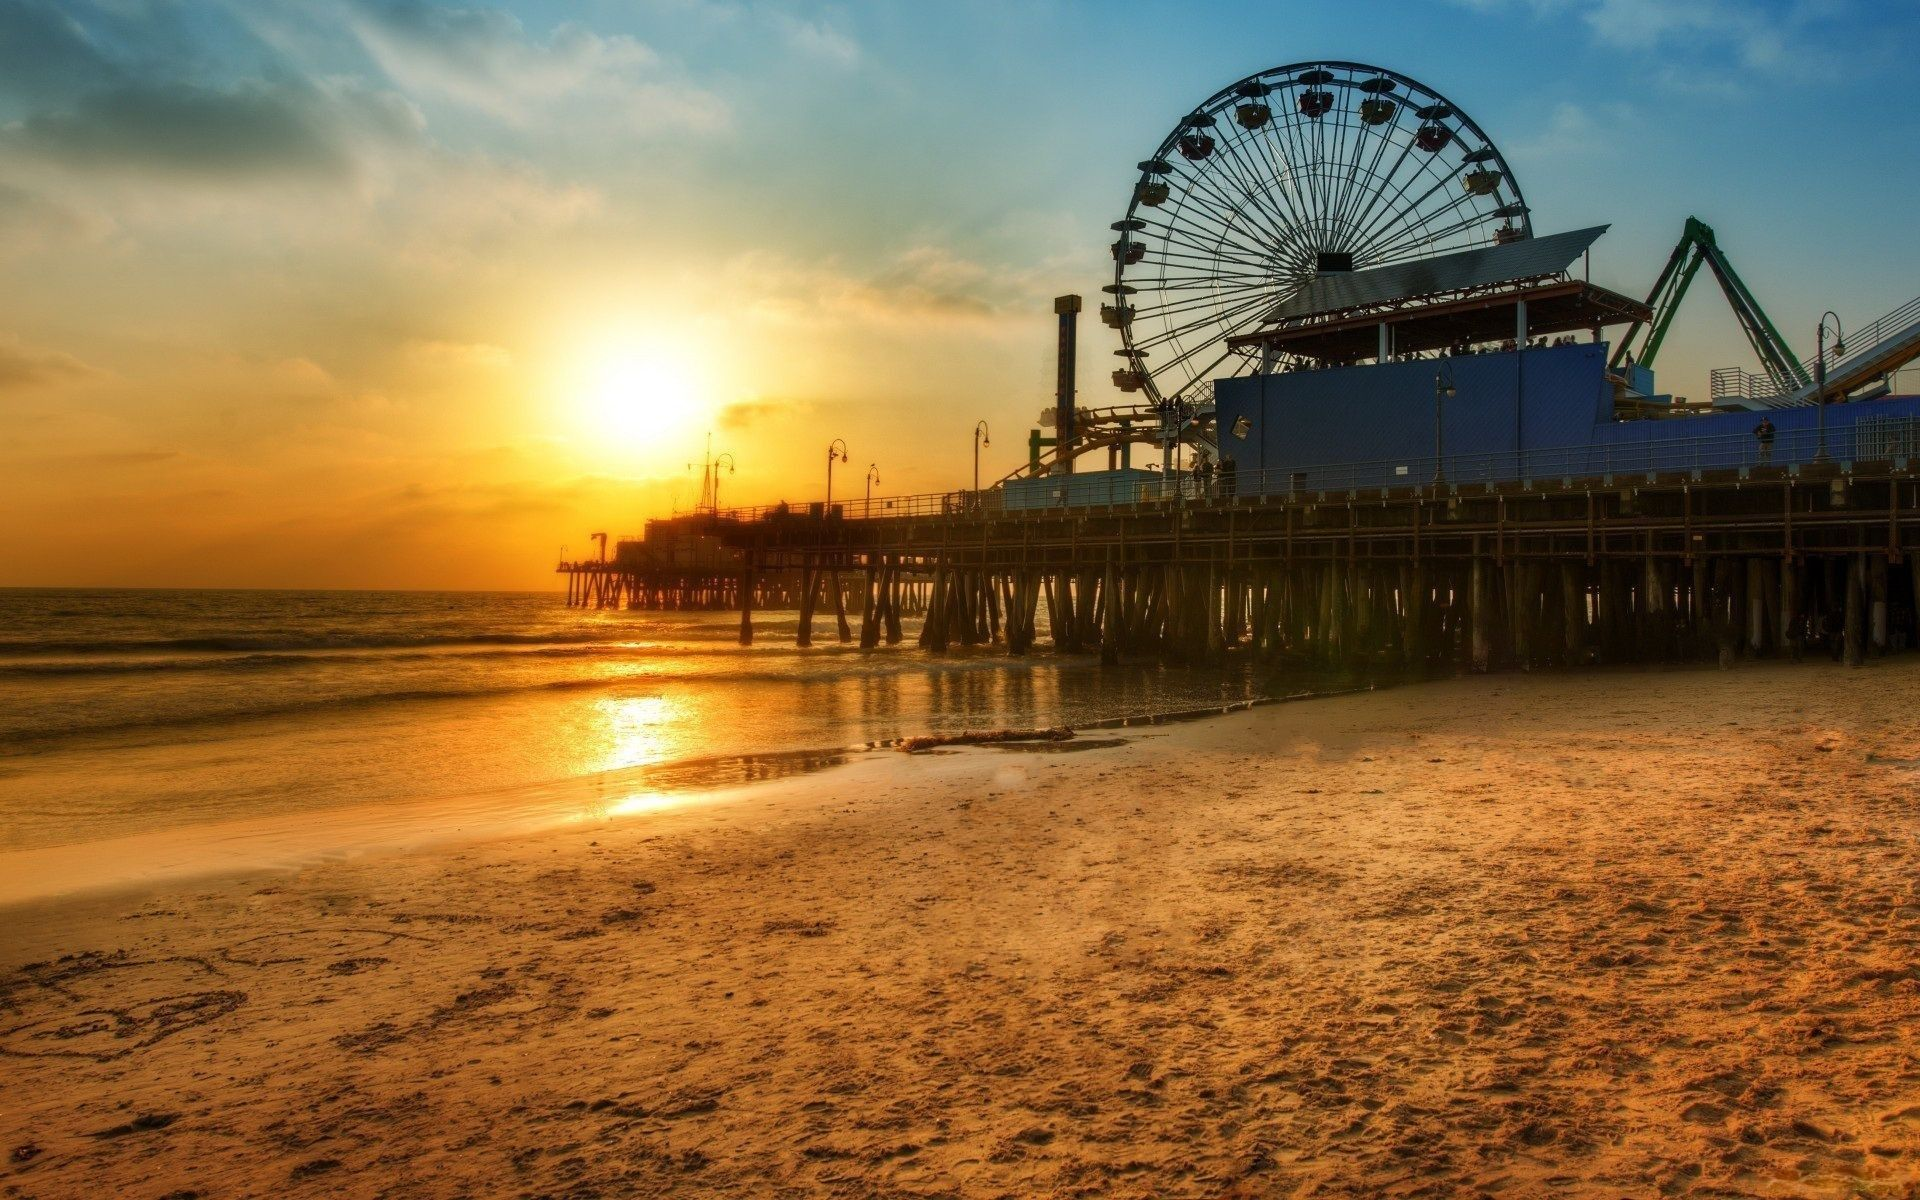 Santa-Monica-Pier-Los-Angeles-United-States